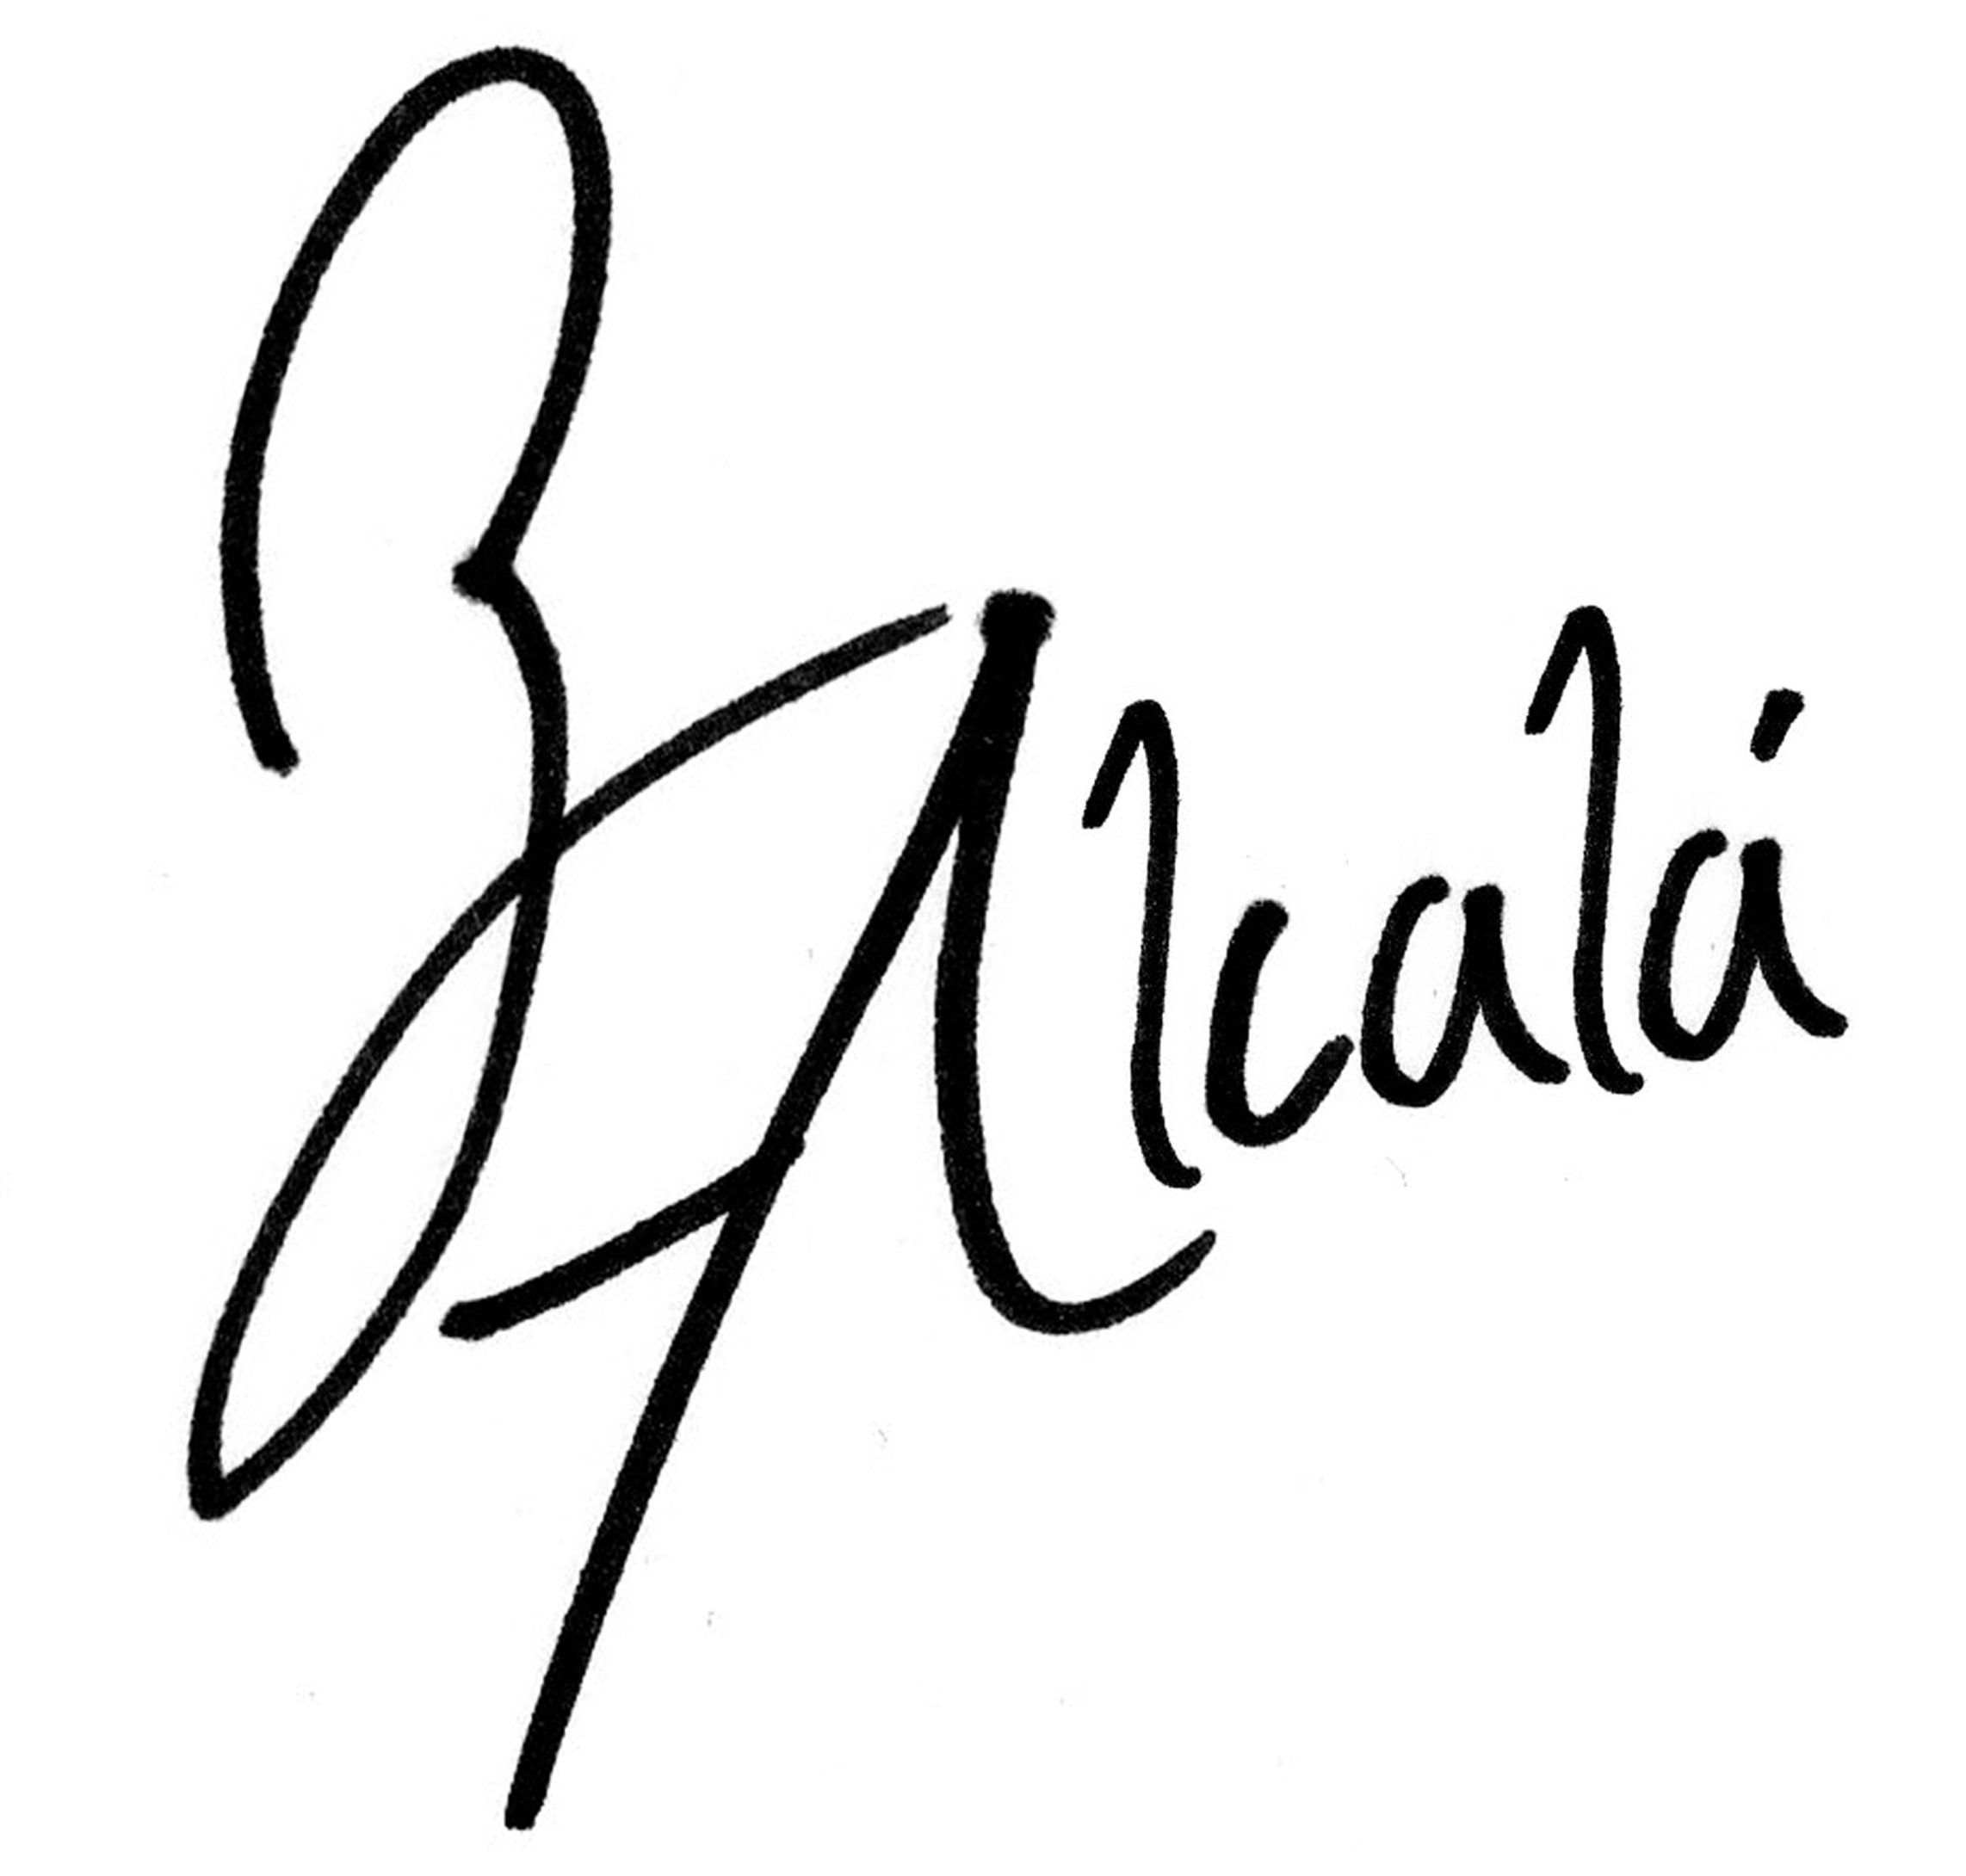 francisco Alcalá's Signature